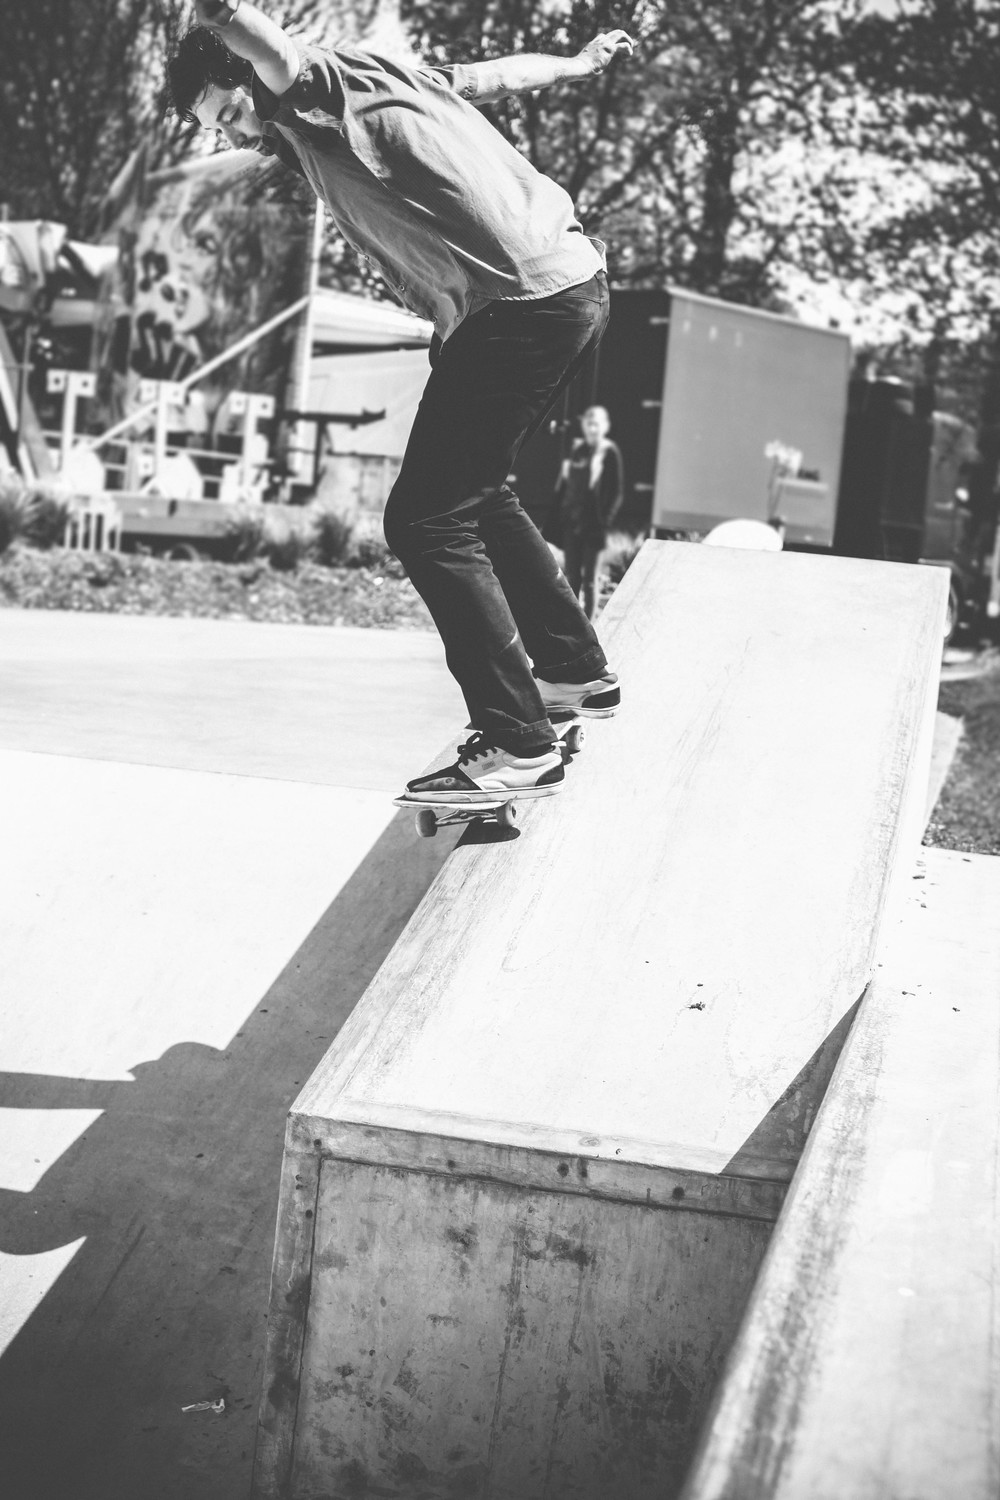 black and white Lightroom VSCO edit of skateboarder